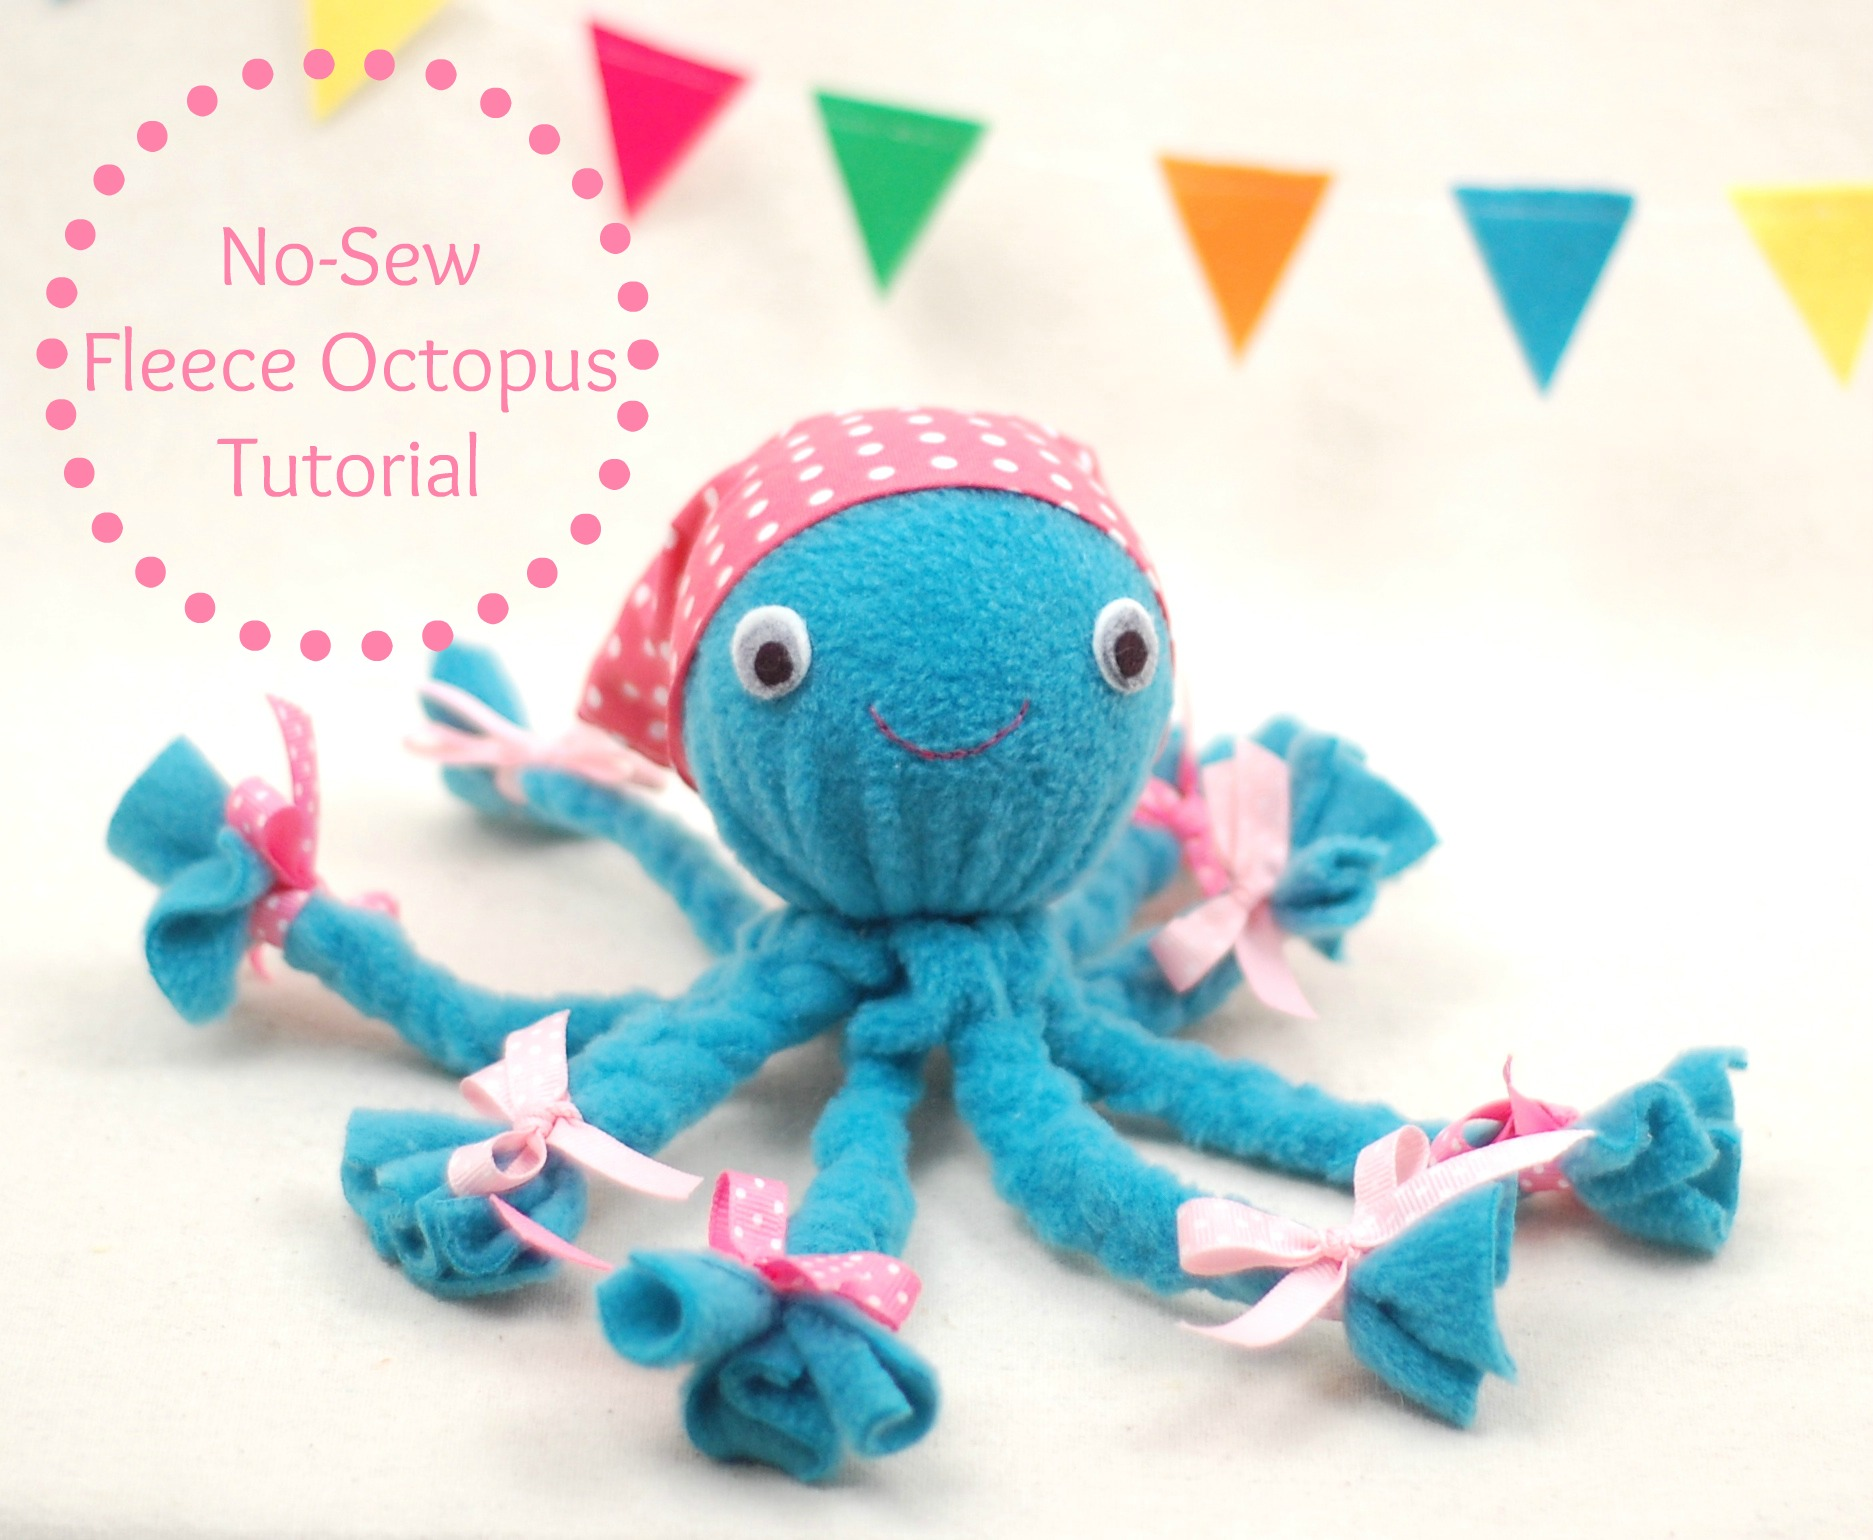 c9f453b72c No-Sew Fleece Octopus Tutorial - whileshenaps.com